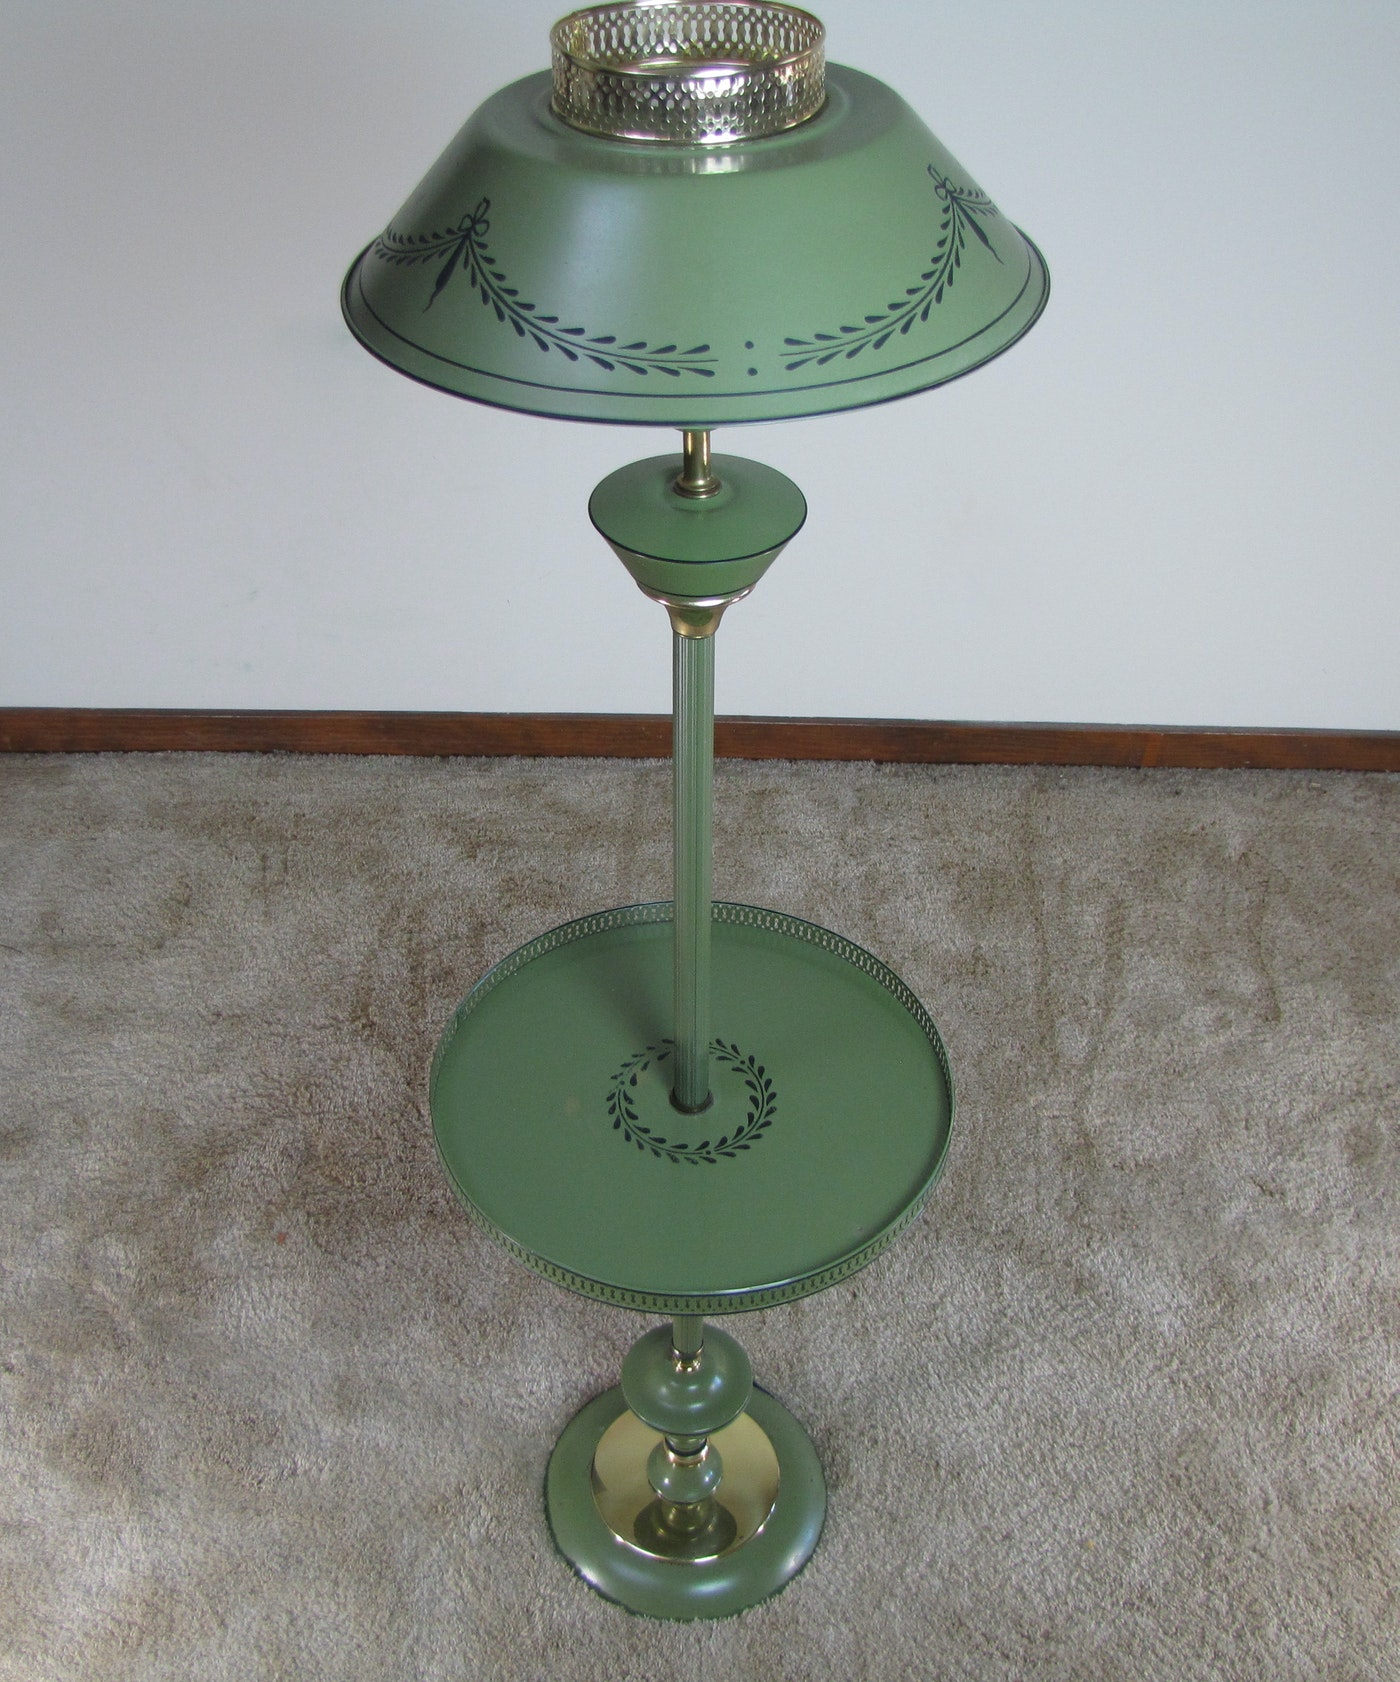 Brass Floor Lamp With Glass Tray Table: Vintage Tole Floor Lamp With Tray Table : EBTH